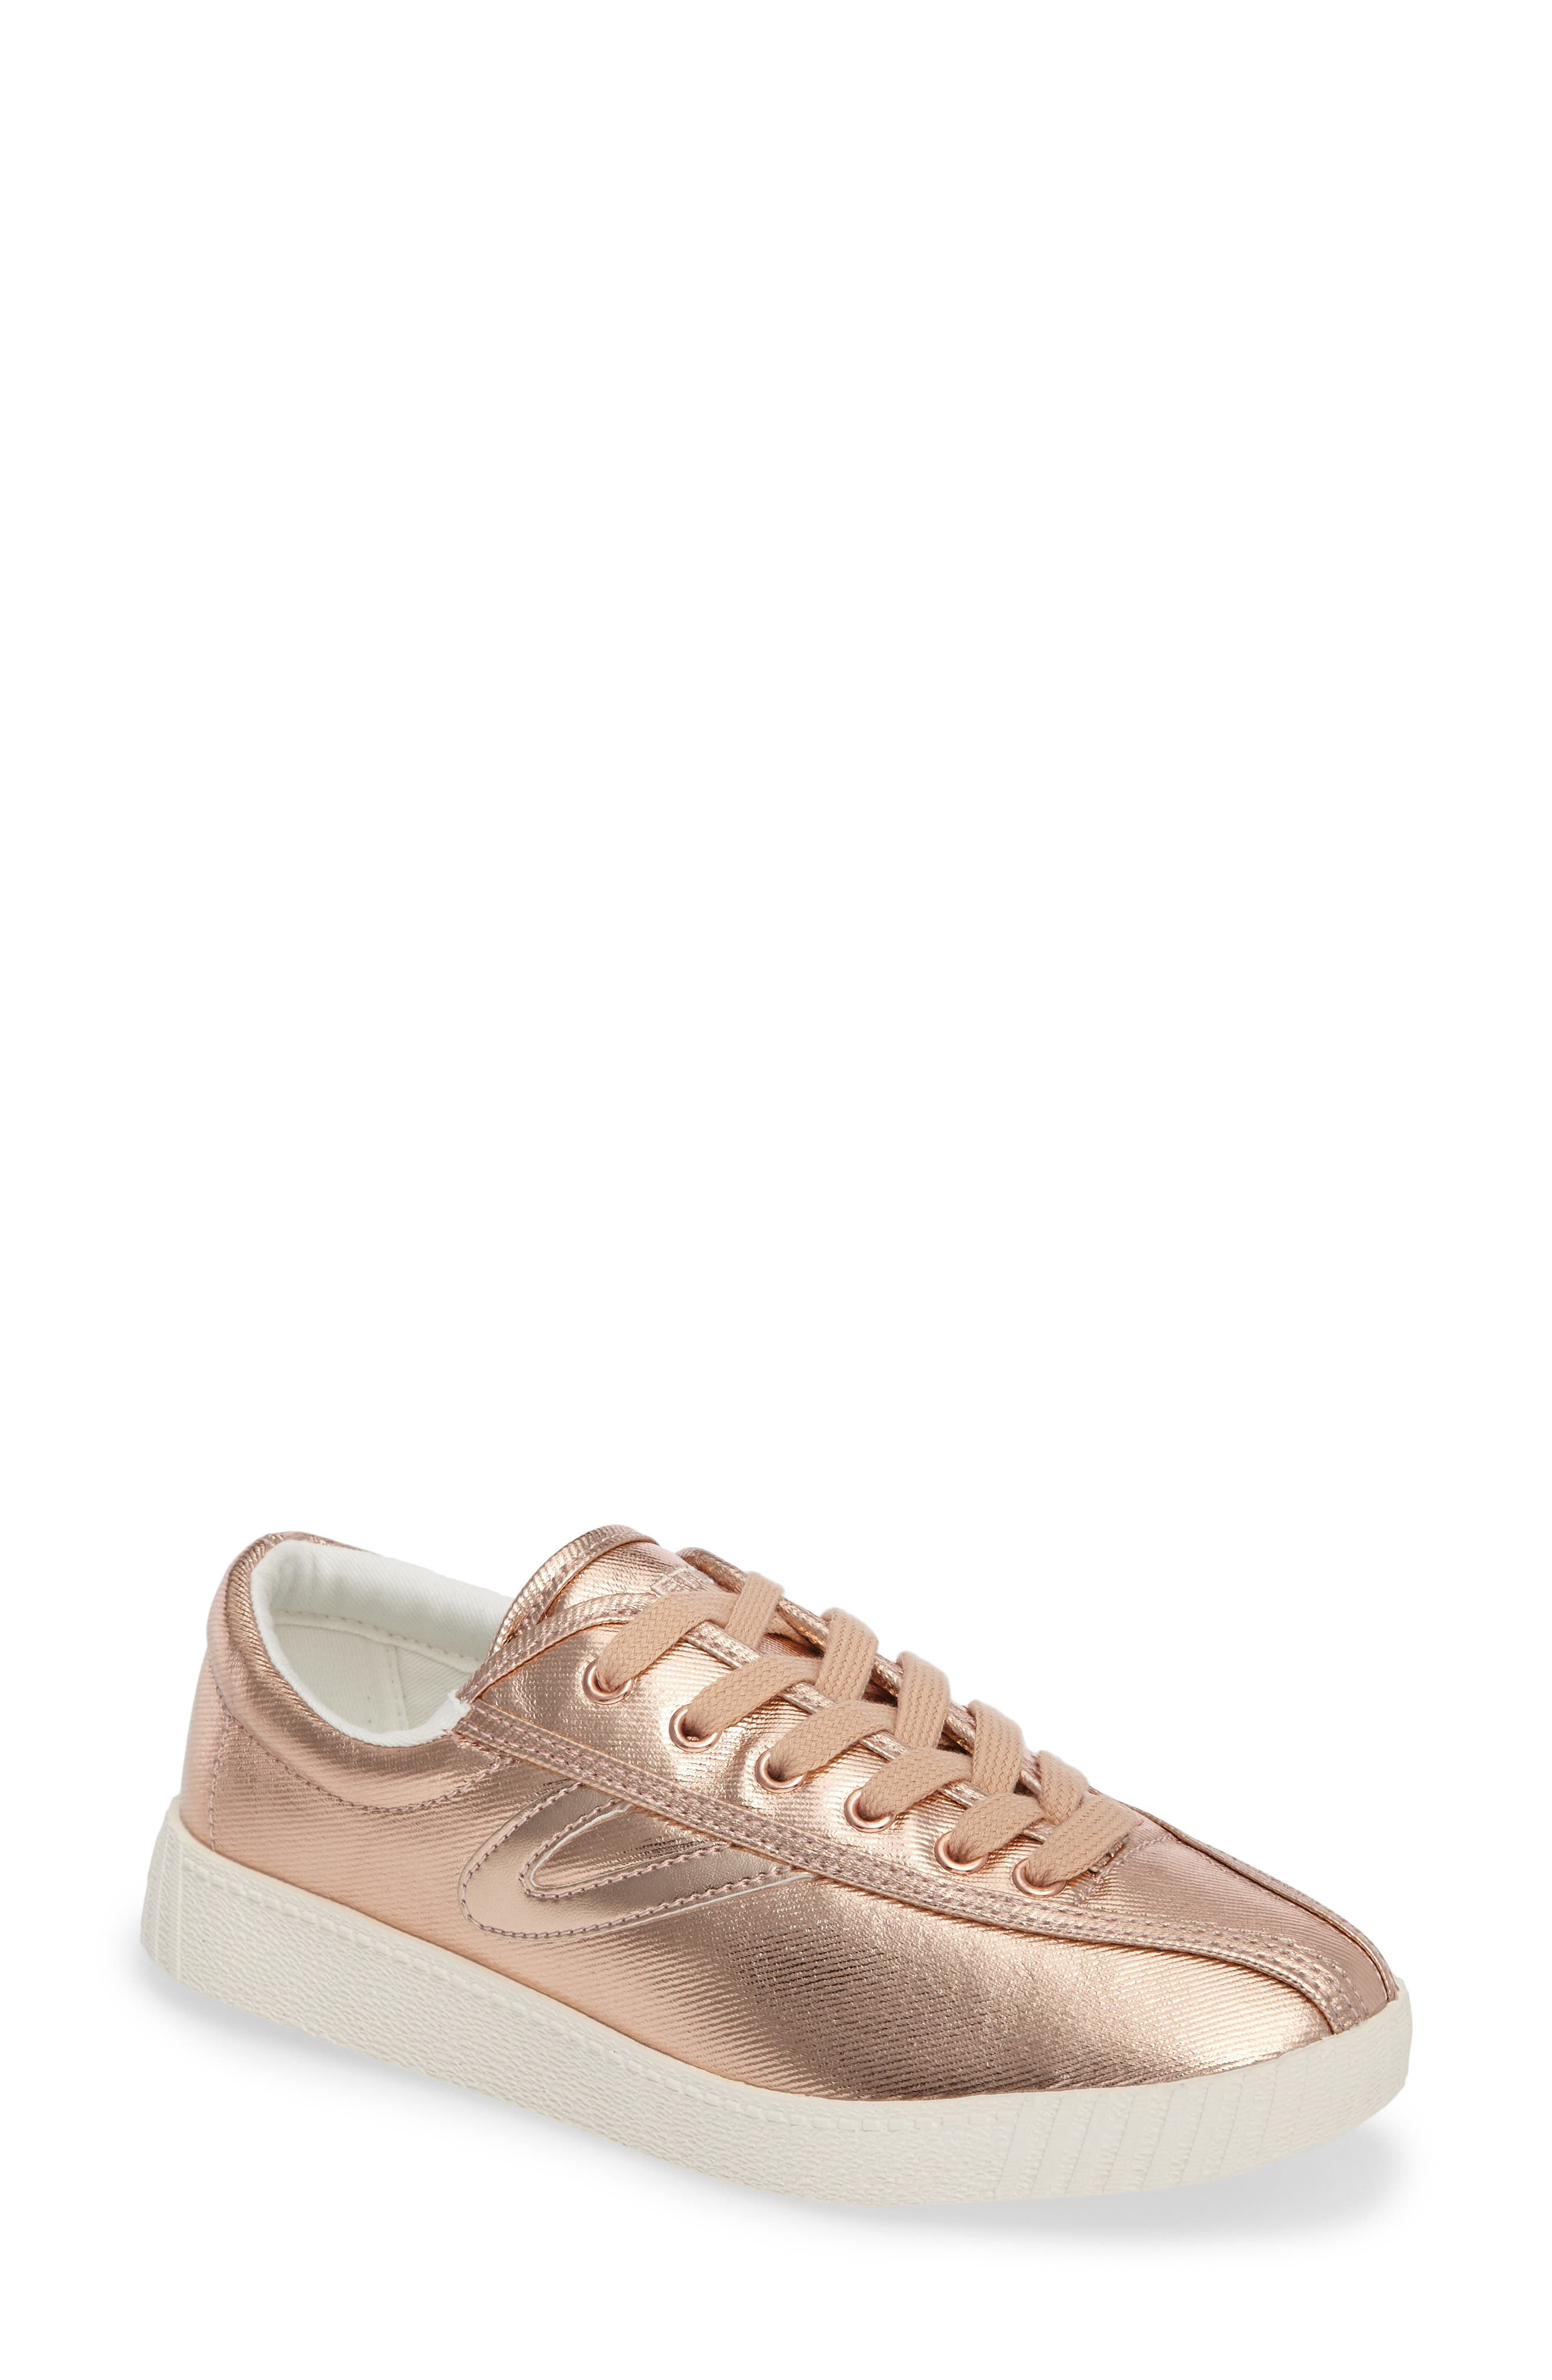 Nylite Plus Sneaker,                             Main thumbnail 1, color,                             Rose Gold/ Rose Gold